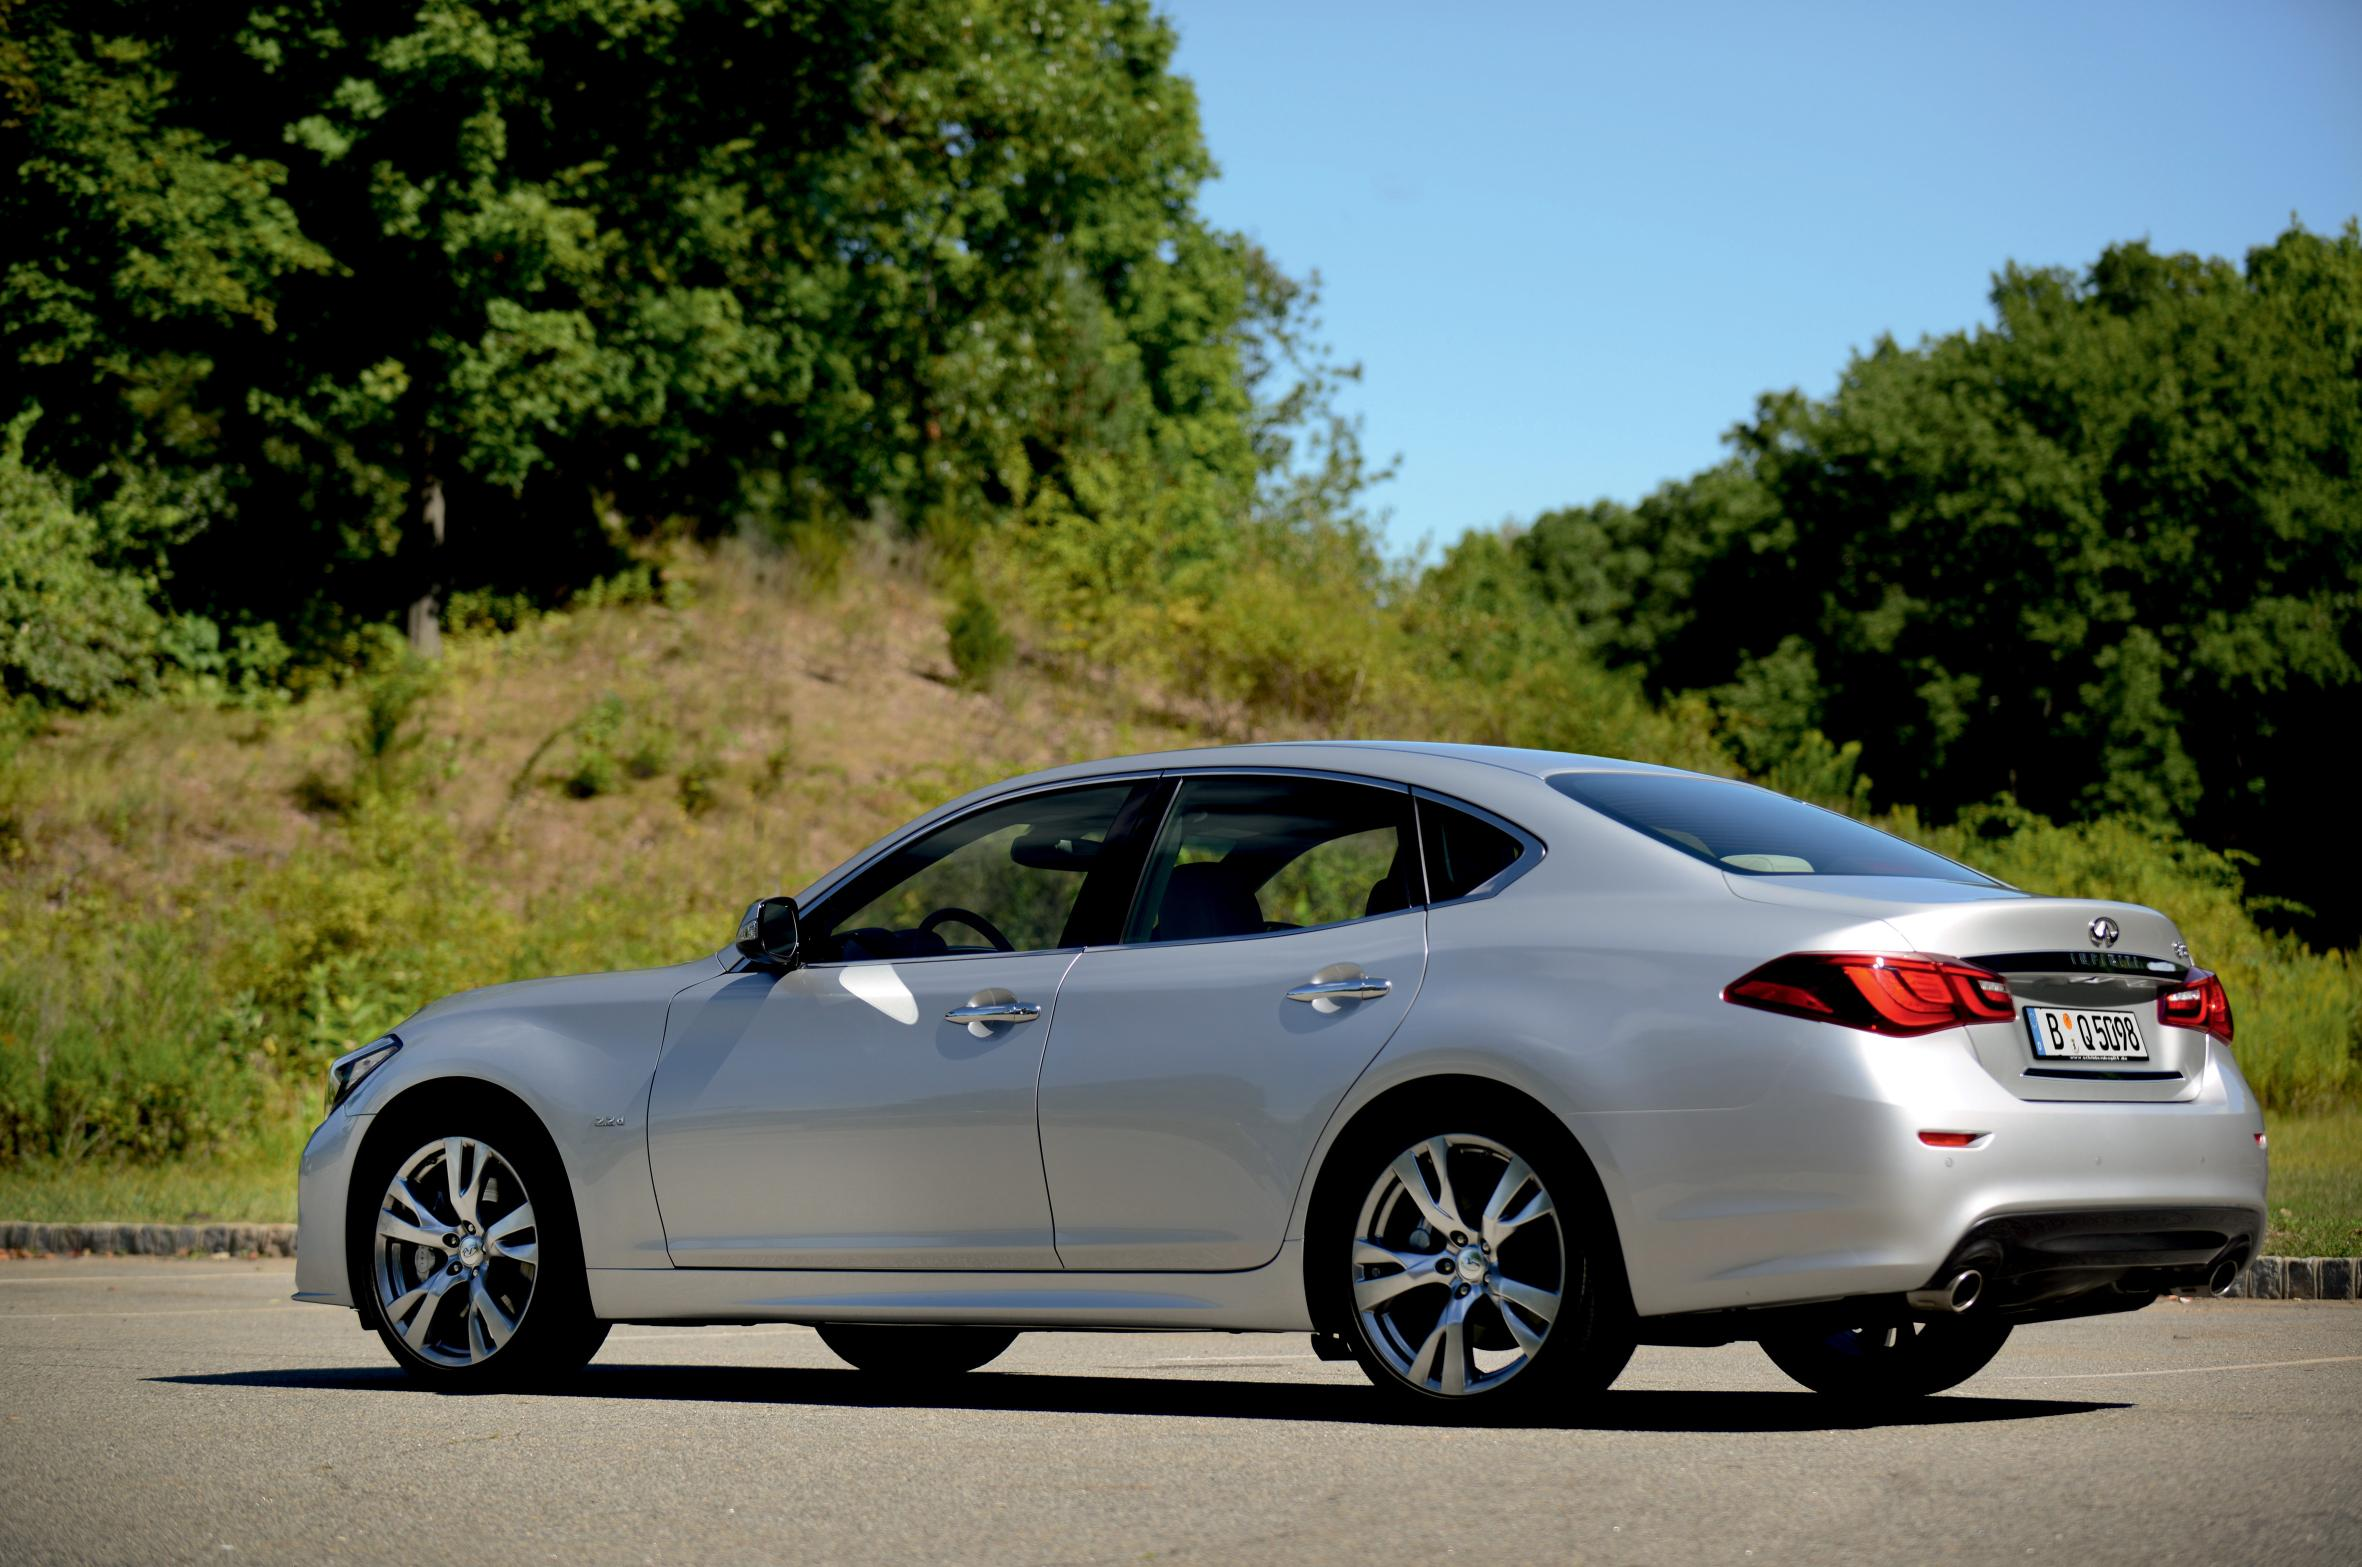 2015 Infiniti Q70 UK Pricing Announced, Offered with Daimler 2.2L